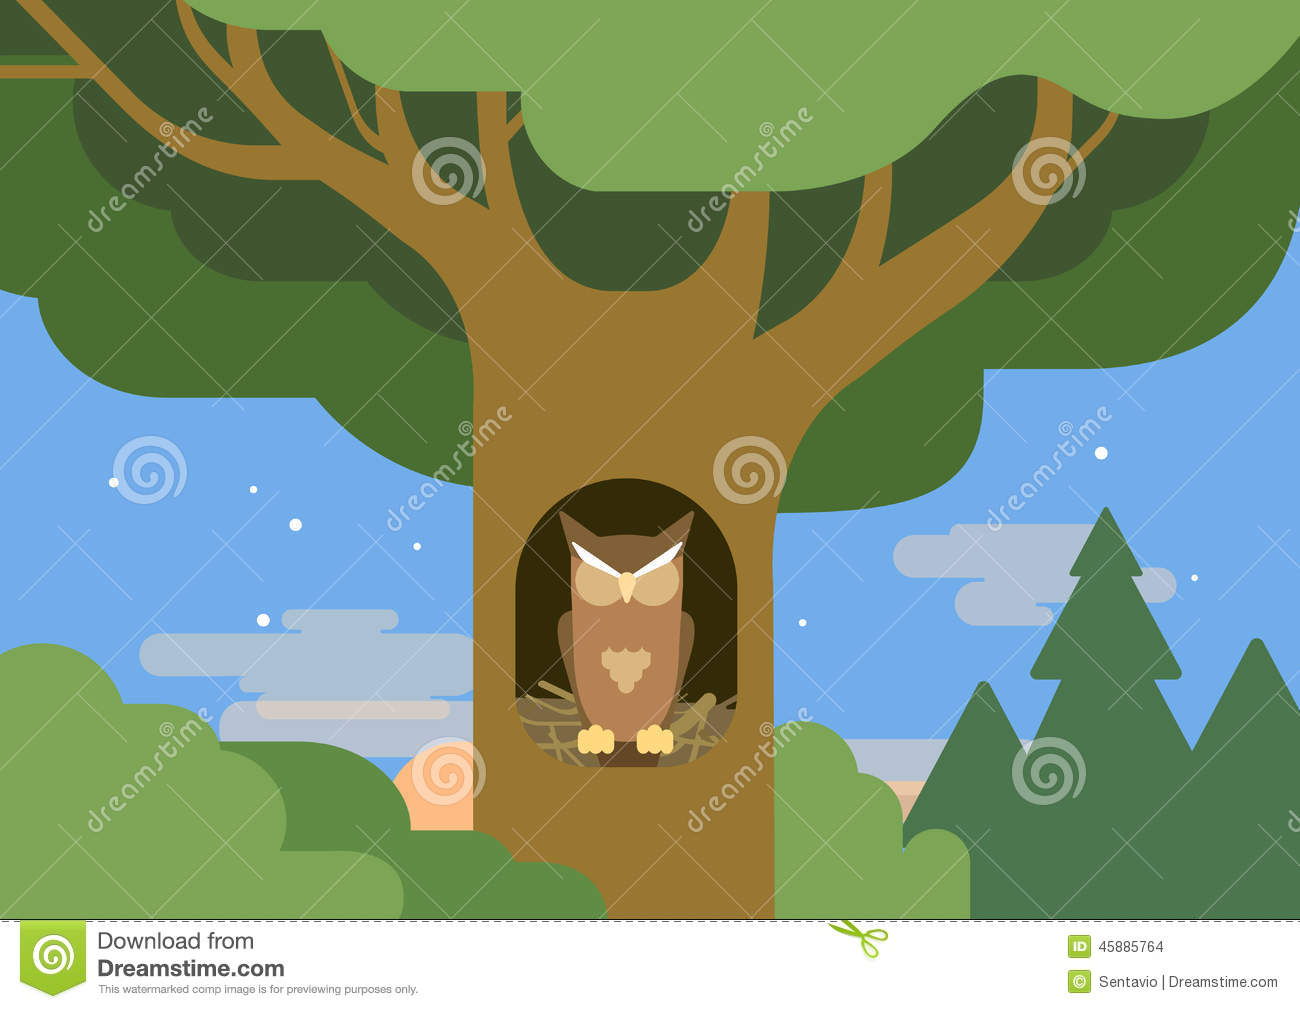 Owl Hollow Forest Habitat Flat Cartoon Vector Wild Animal Bird Stock ...